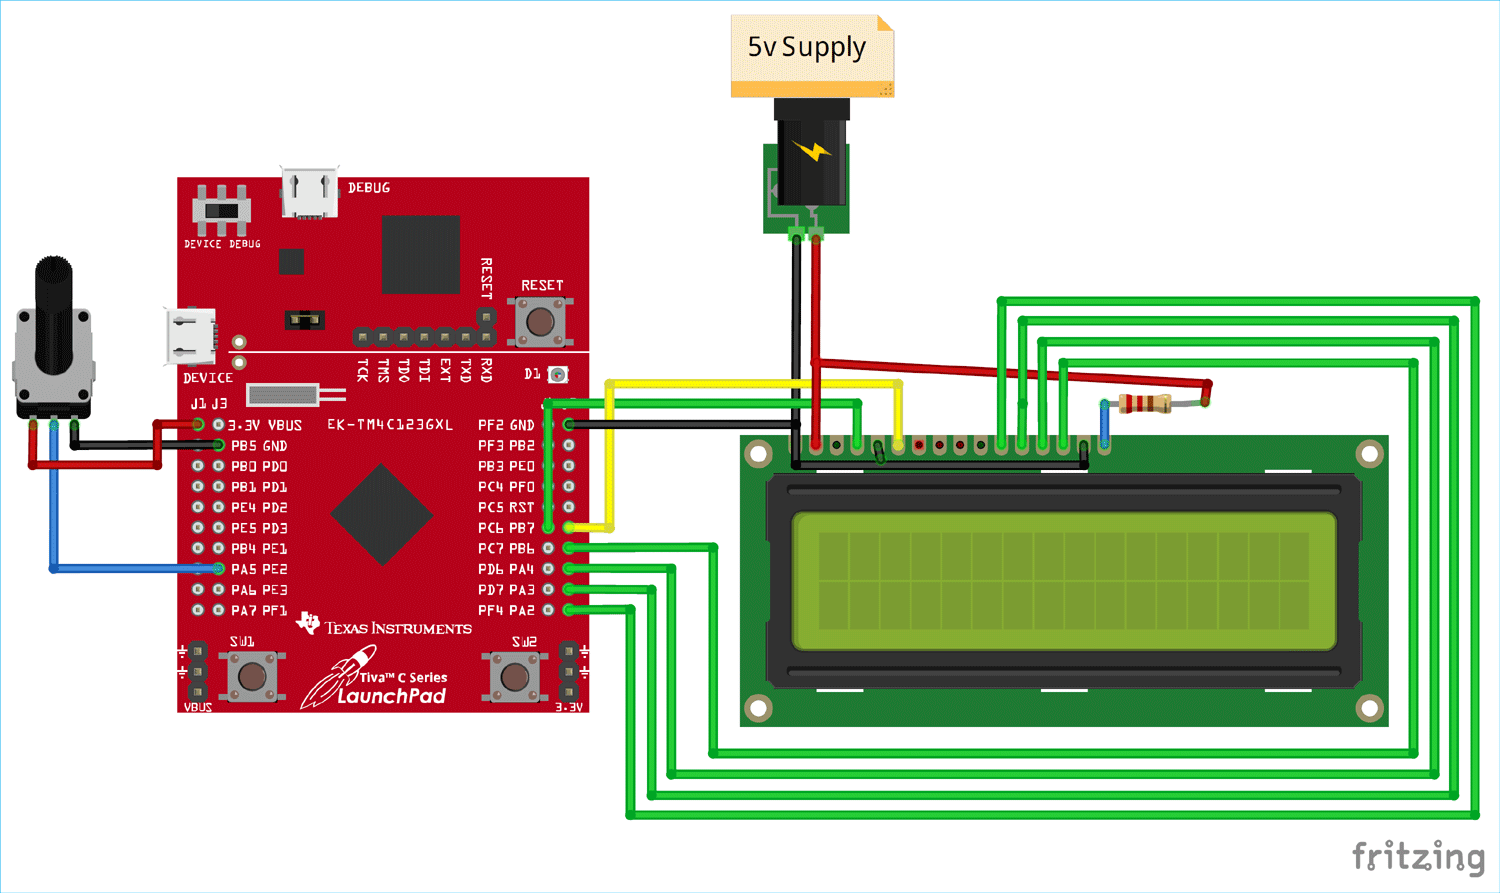 How To Interface A Lcd Display With Tiva C Series Tm4c123g Launchpad From Texas Instruments